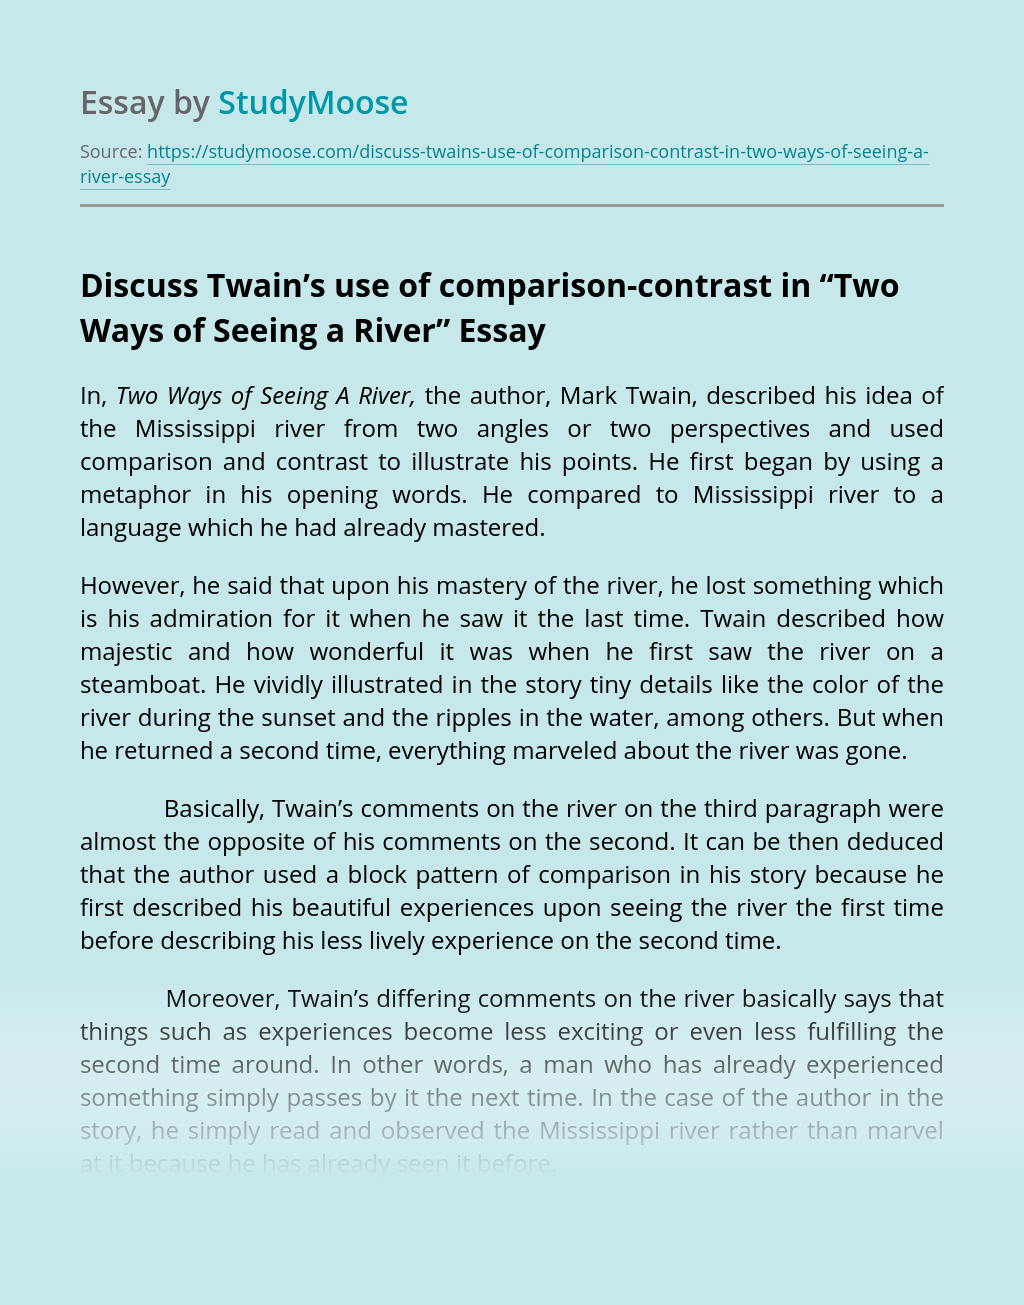 """Discuss Twain's use of comparison-contrast in """"Two Ways of Seeing a River"""""""